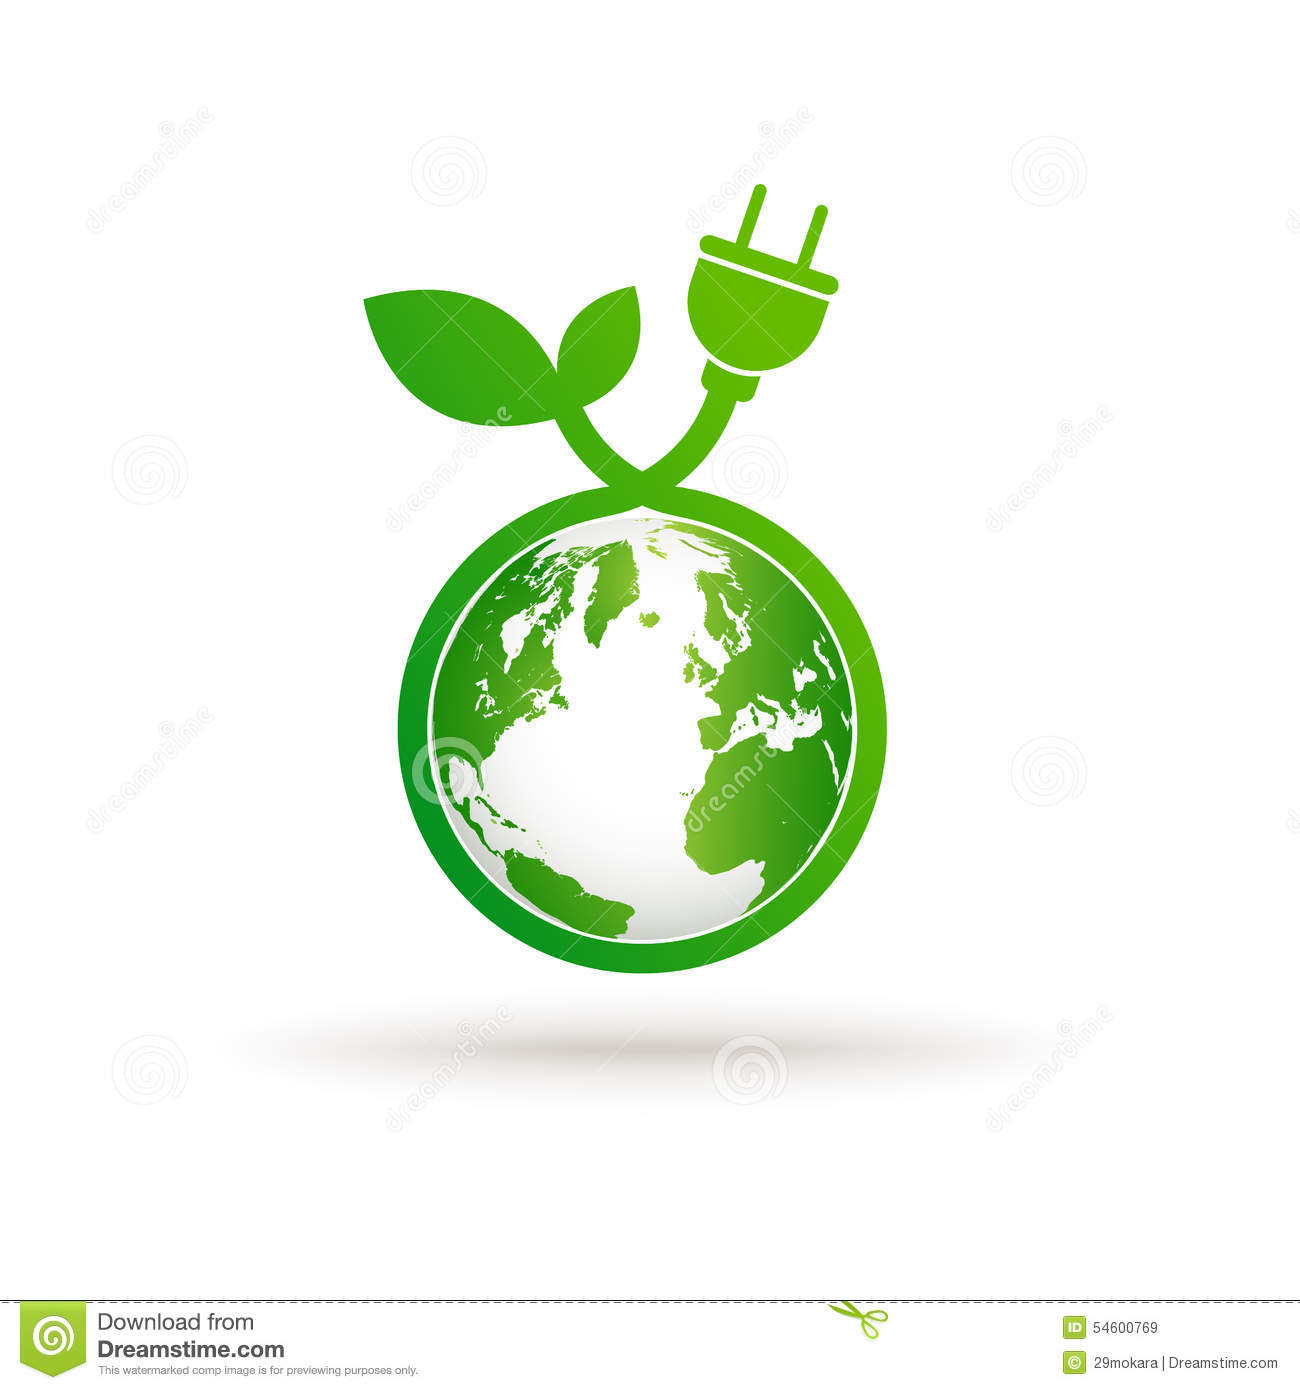 Clipart on save energy save environment jpg black and white stock Clipart on save energy save environment - ClipartFest jpg black and white stock